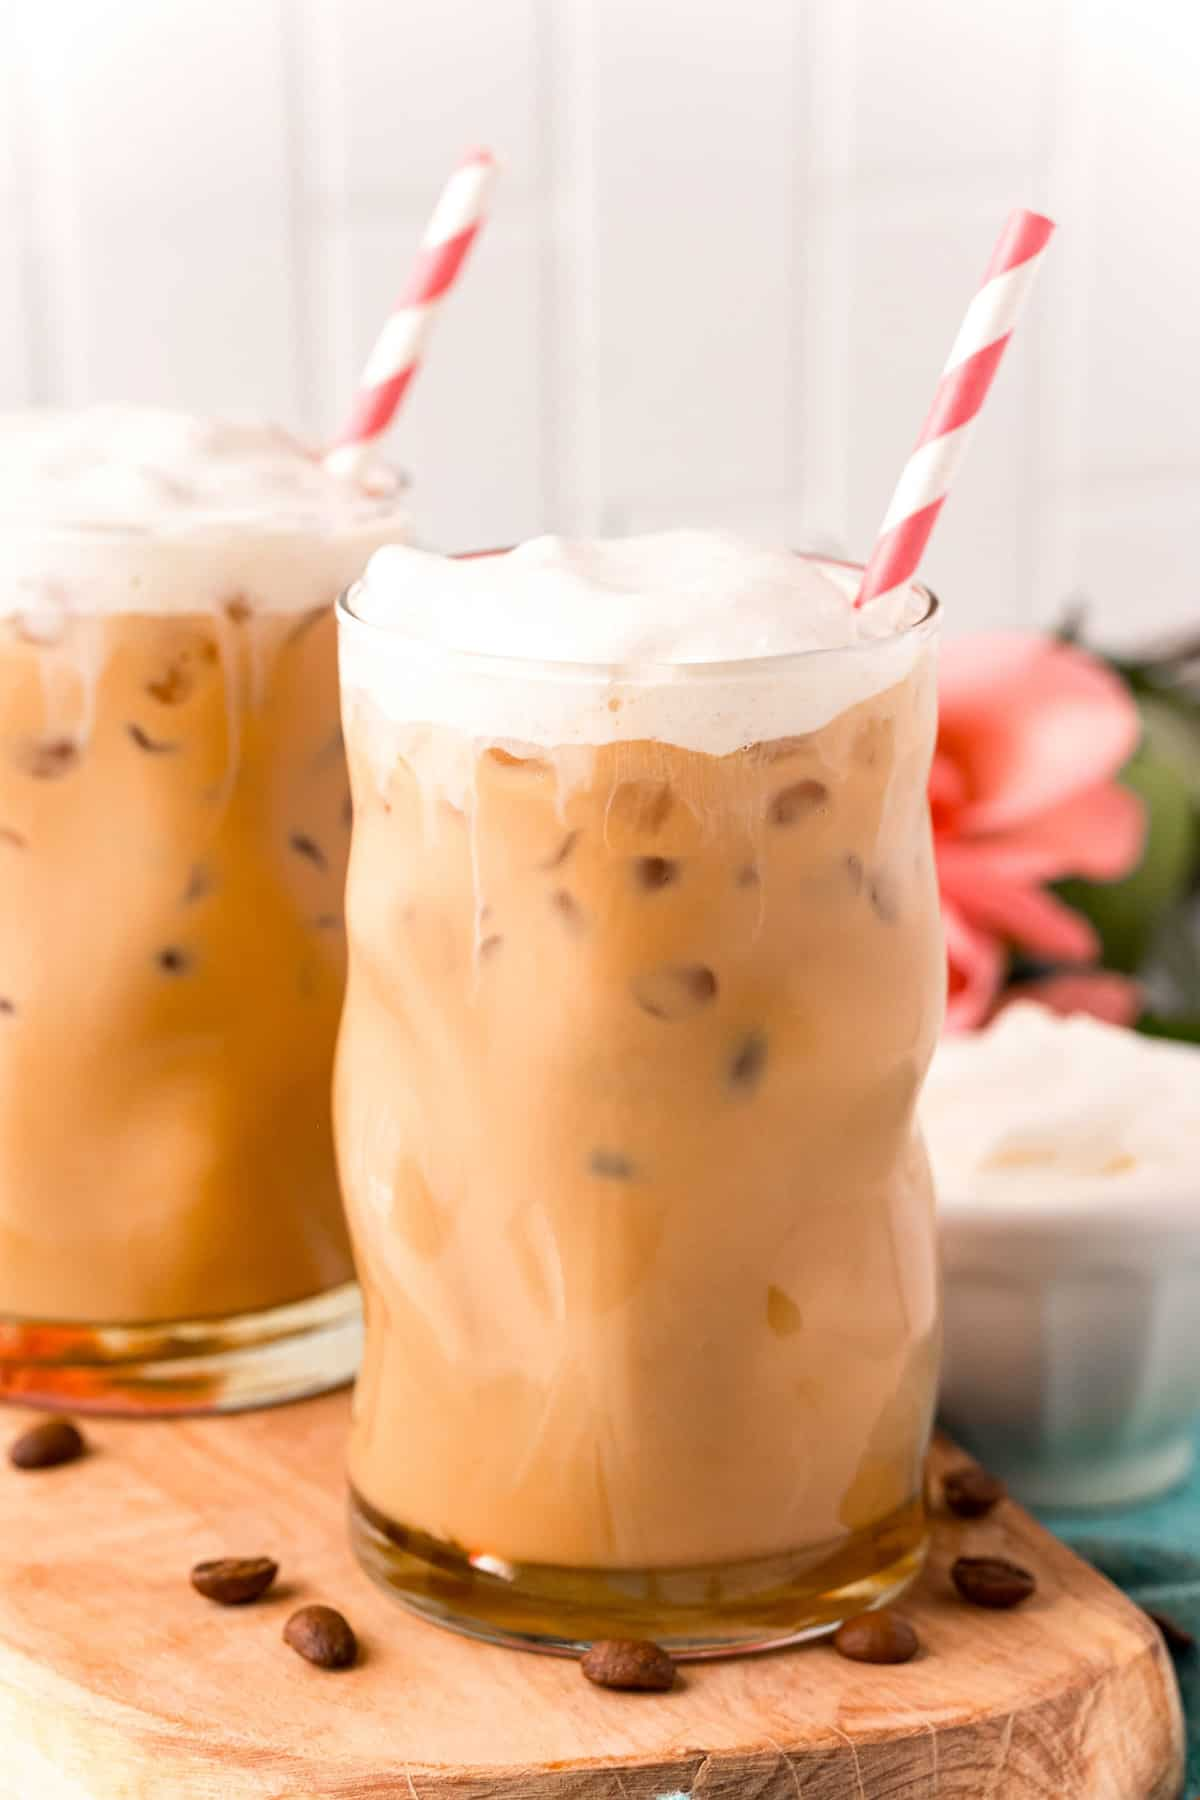 Two iced coffee drinks topped with whipped cream, with striped straws.